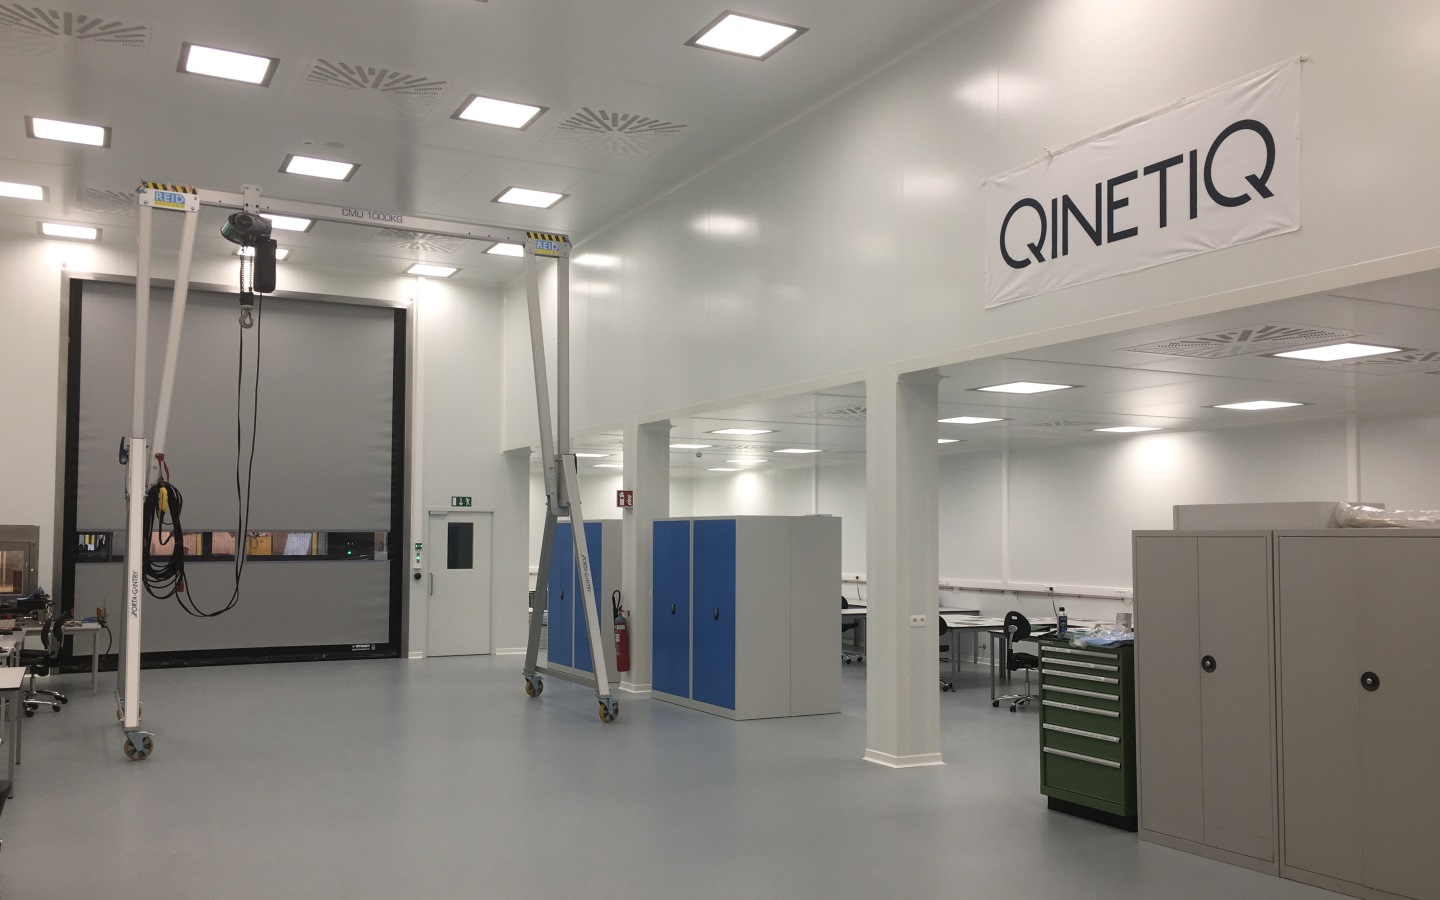 QinetiQ Space Opens New State-of-the-Art Cleanroom Facilities